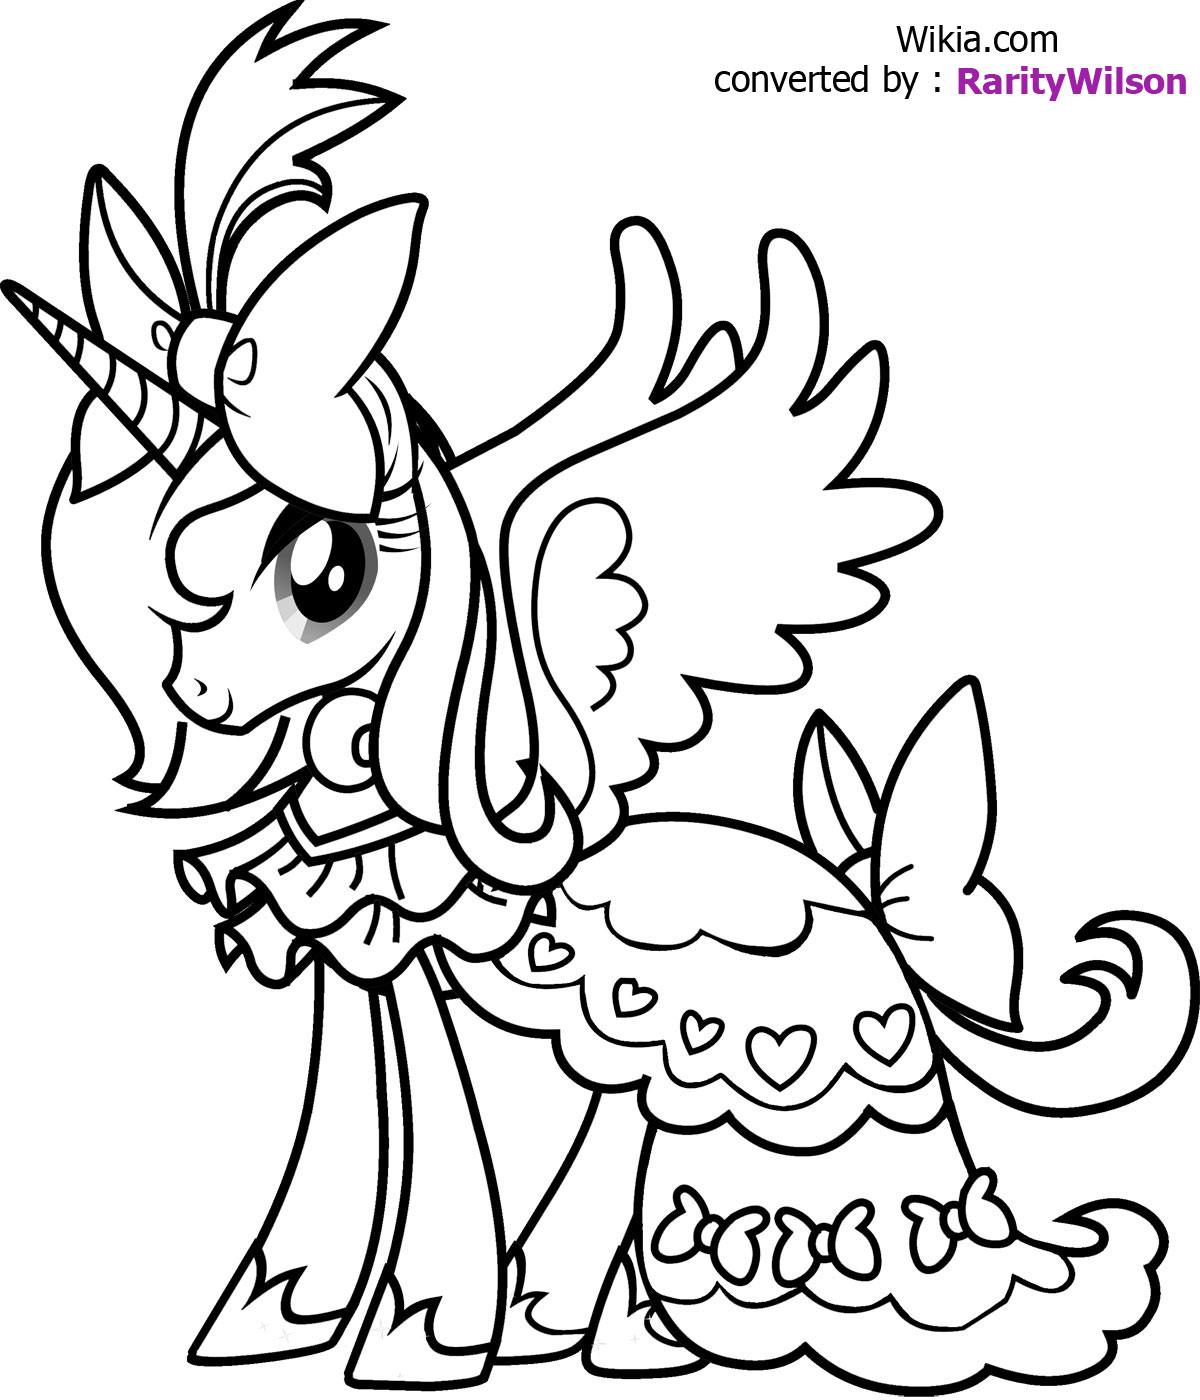 th?id=OIP.pOKyr_YafZE2PzKJcodwFQEBEs&pid=15.1 moreover my little pony coloring pages of rarity 1 on my little pony coloring pages of rarity also with my little pony coloring pages of rarity 2 on my little pony coloring pages of rarity besides my little pony coloring pages of rarity 3 on my little pony coloring pages of rarity also my little pony coloring pages of rarity 4 on my little pony coloring pages of rarity